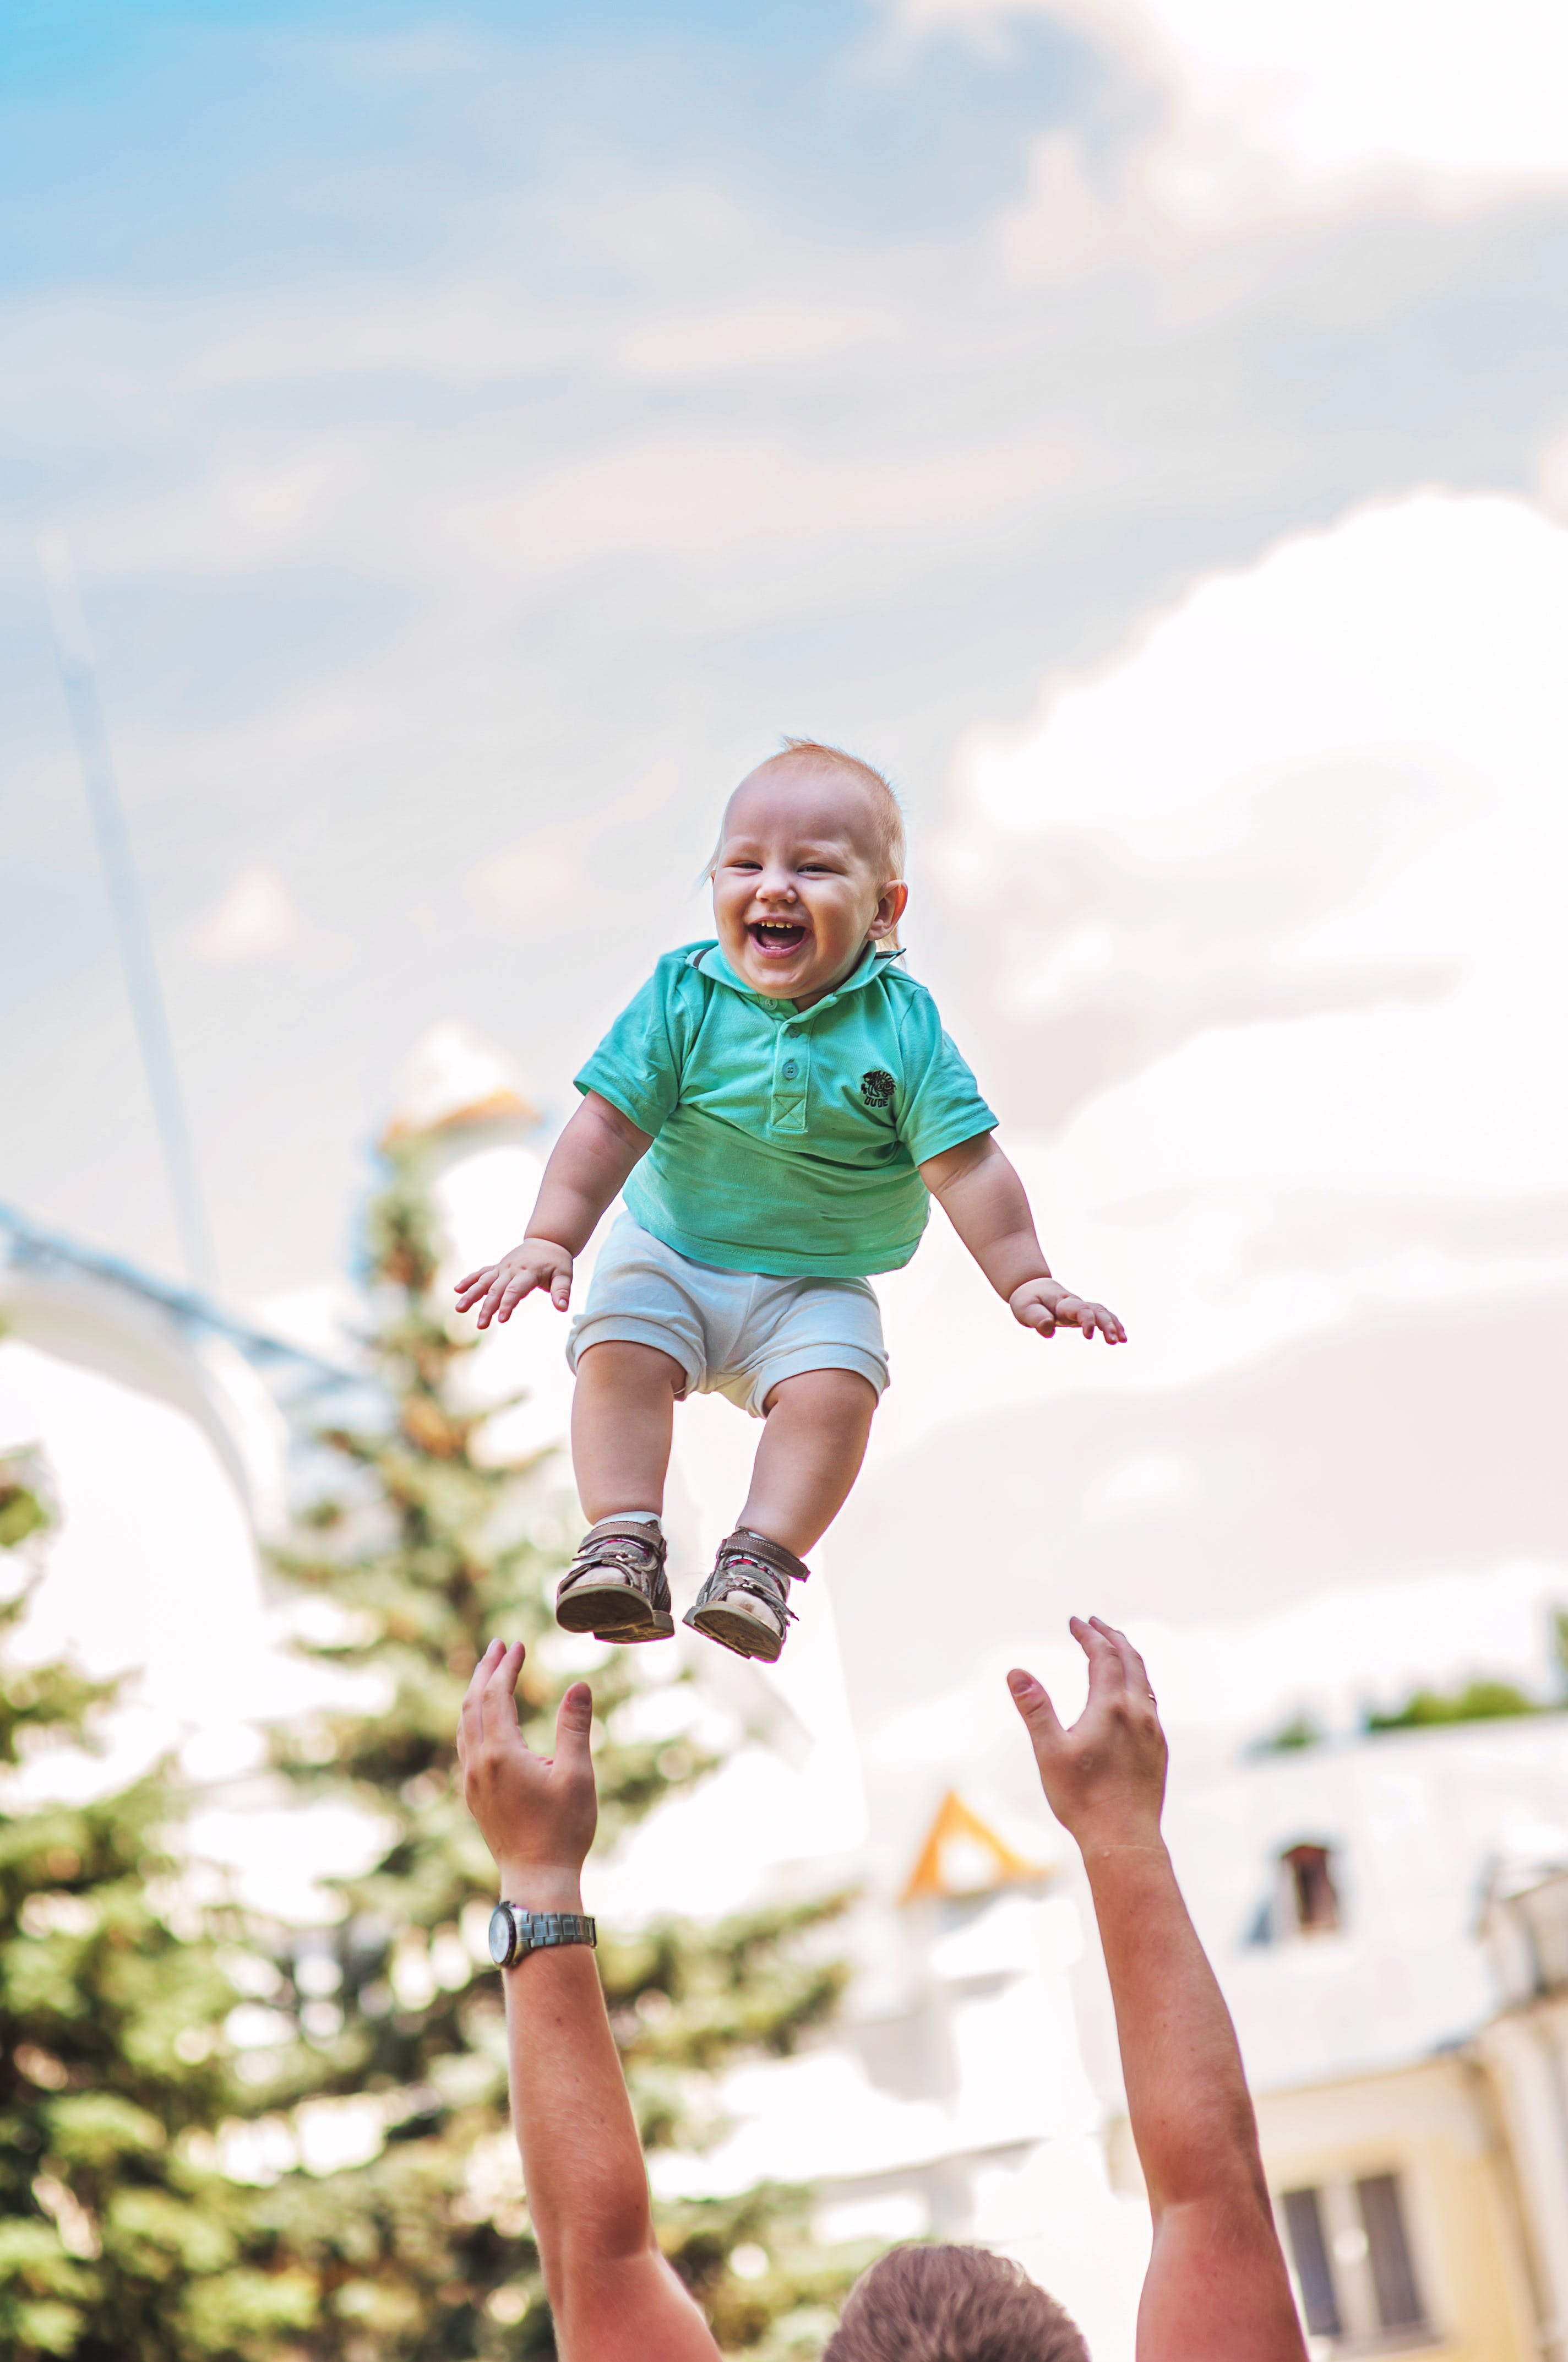 Free stock photo of child, kid, fly, happiness